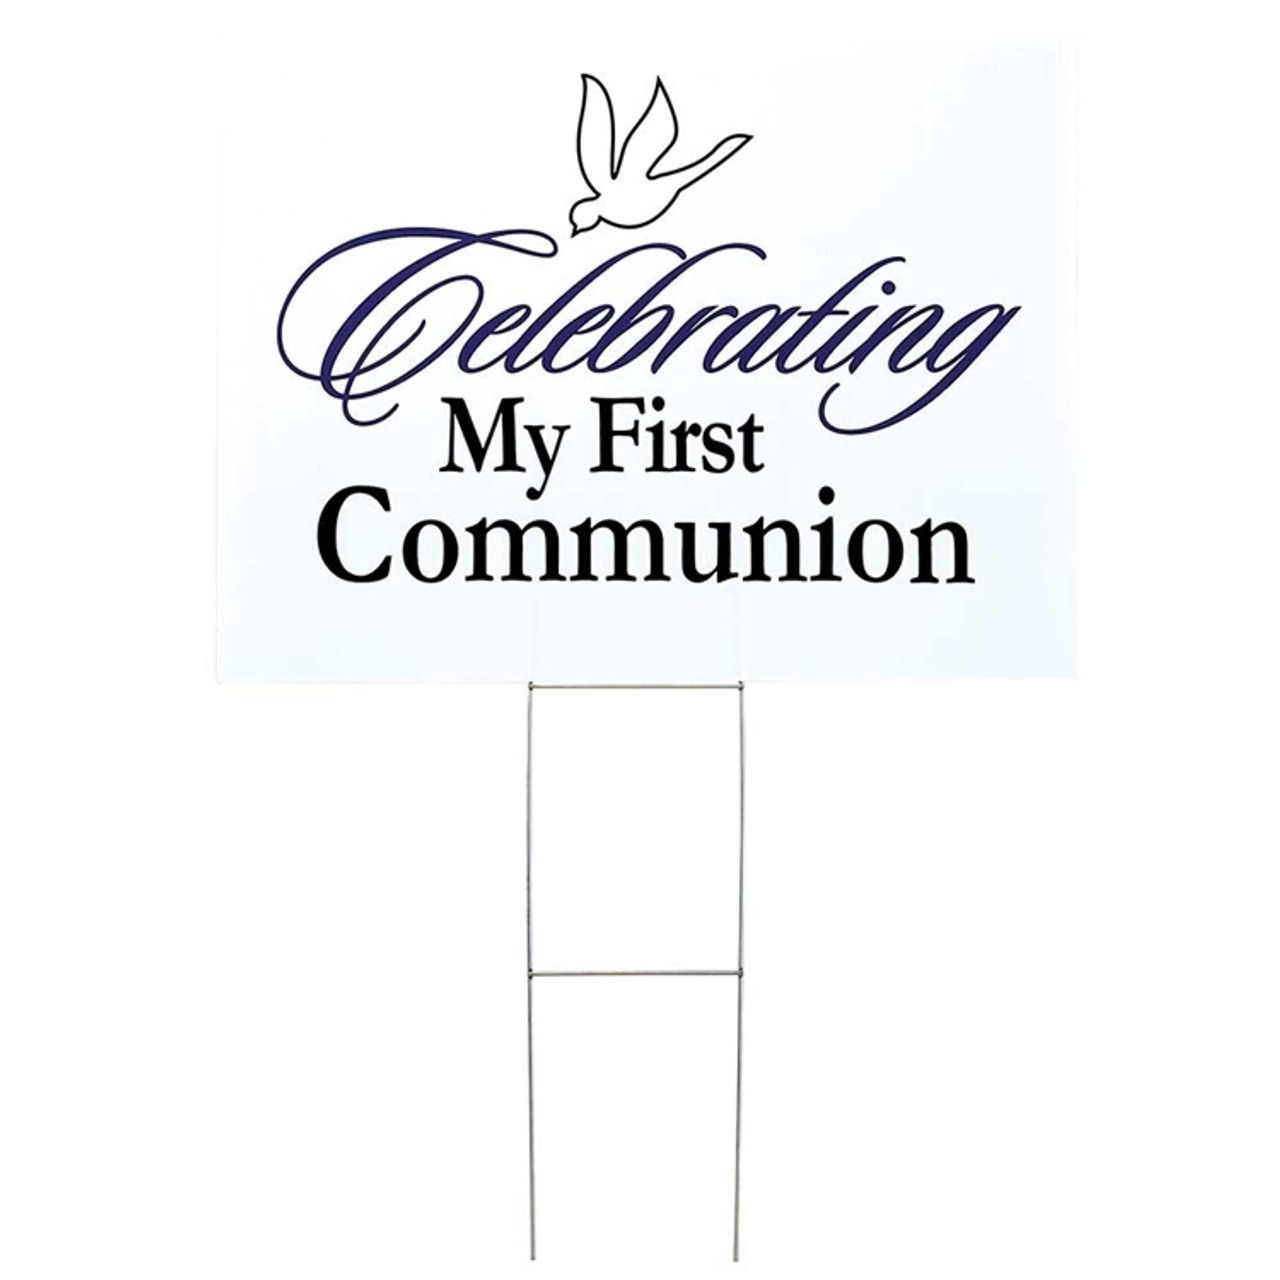 Celebrating! | First Holy Communion Yard Sign | 18"|1280|1280|?|8eb364ab688b41184075479f6d99ae43|False|UNLIKELY|0.3623022437095642